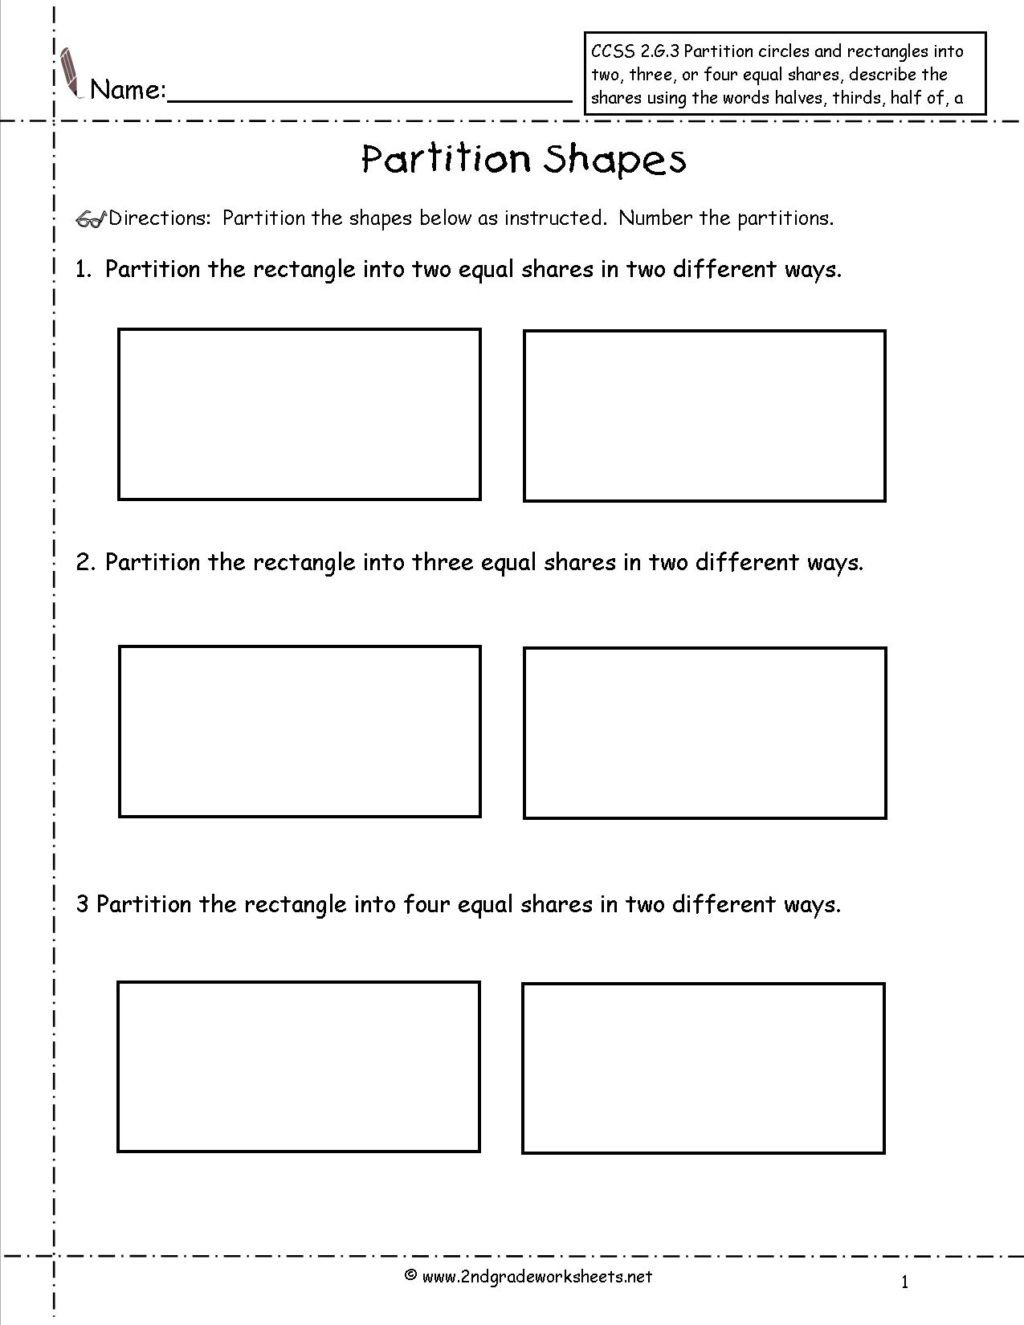 3 Dimensional Shapes Worksheet Worksheet Ccss G Worksheets Partition Shapes Gradetry